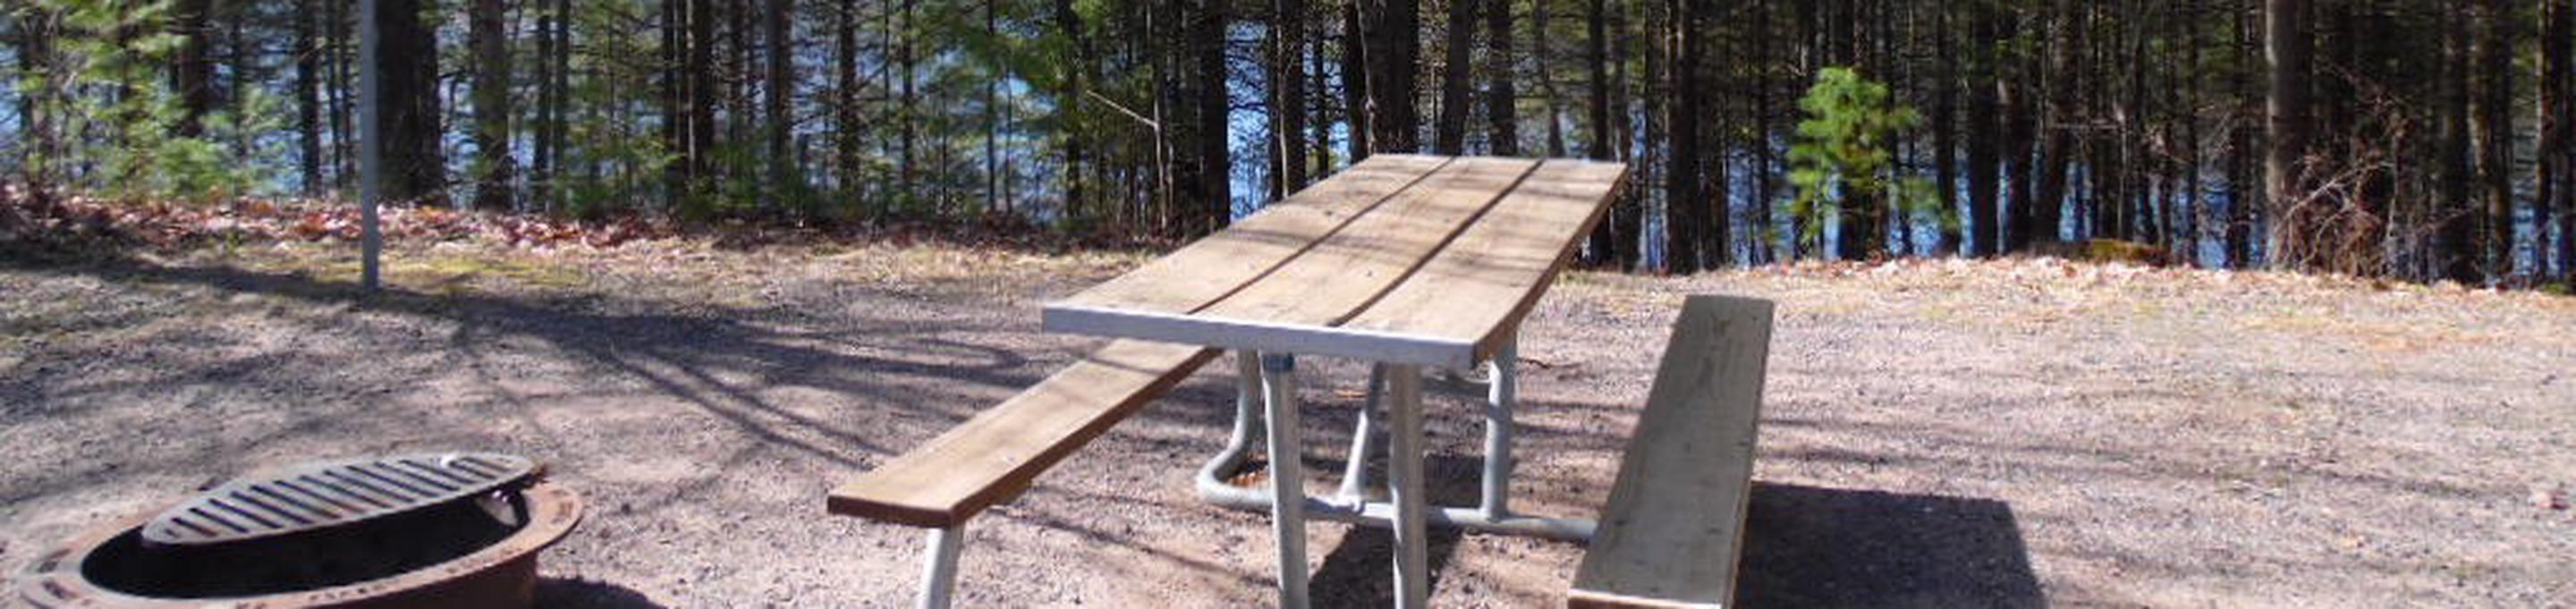 Two Lakes Campground site #64 with picnic table and fire pit view among the trees.